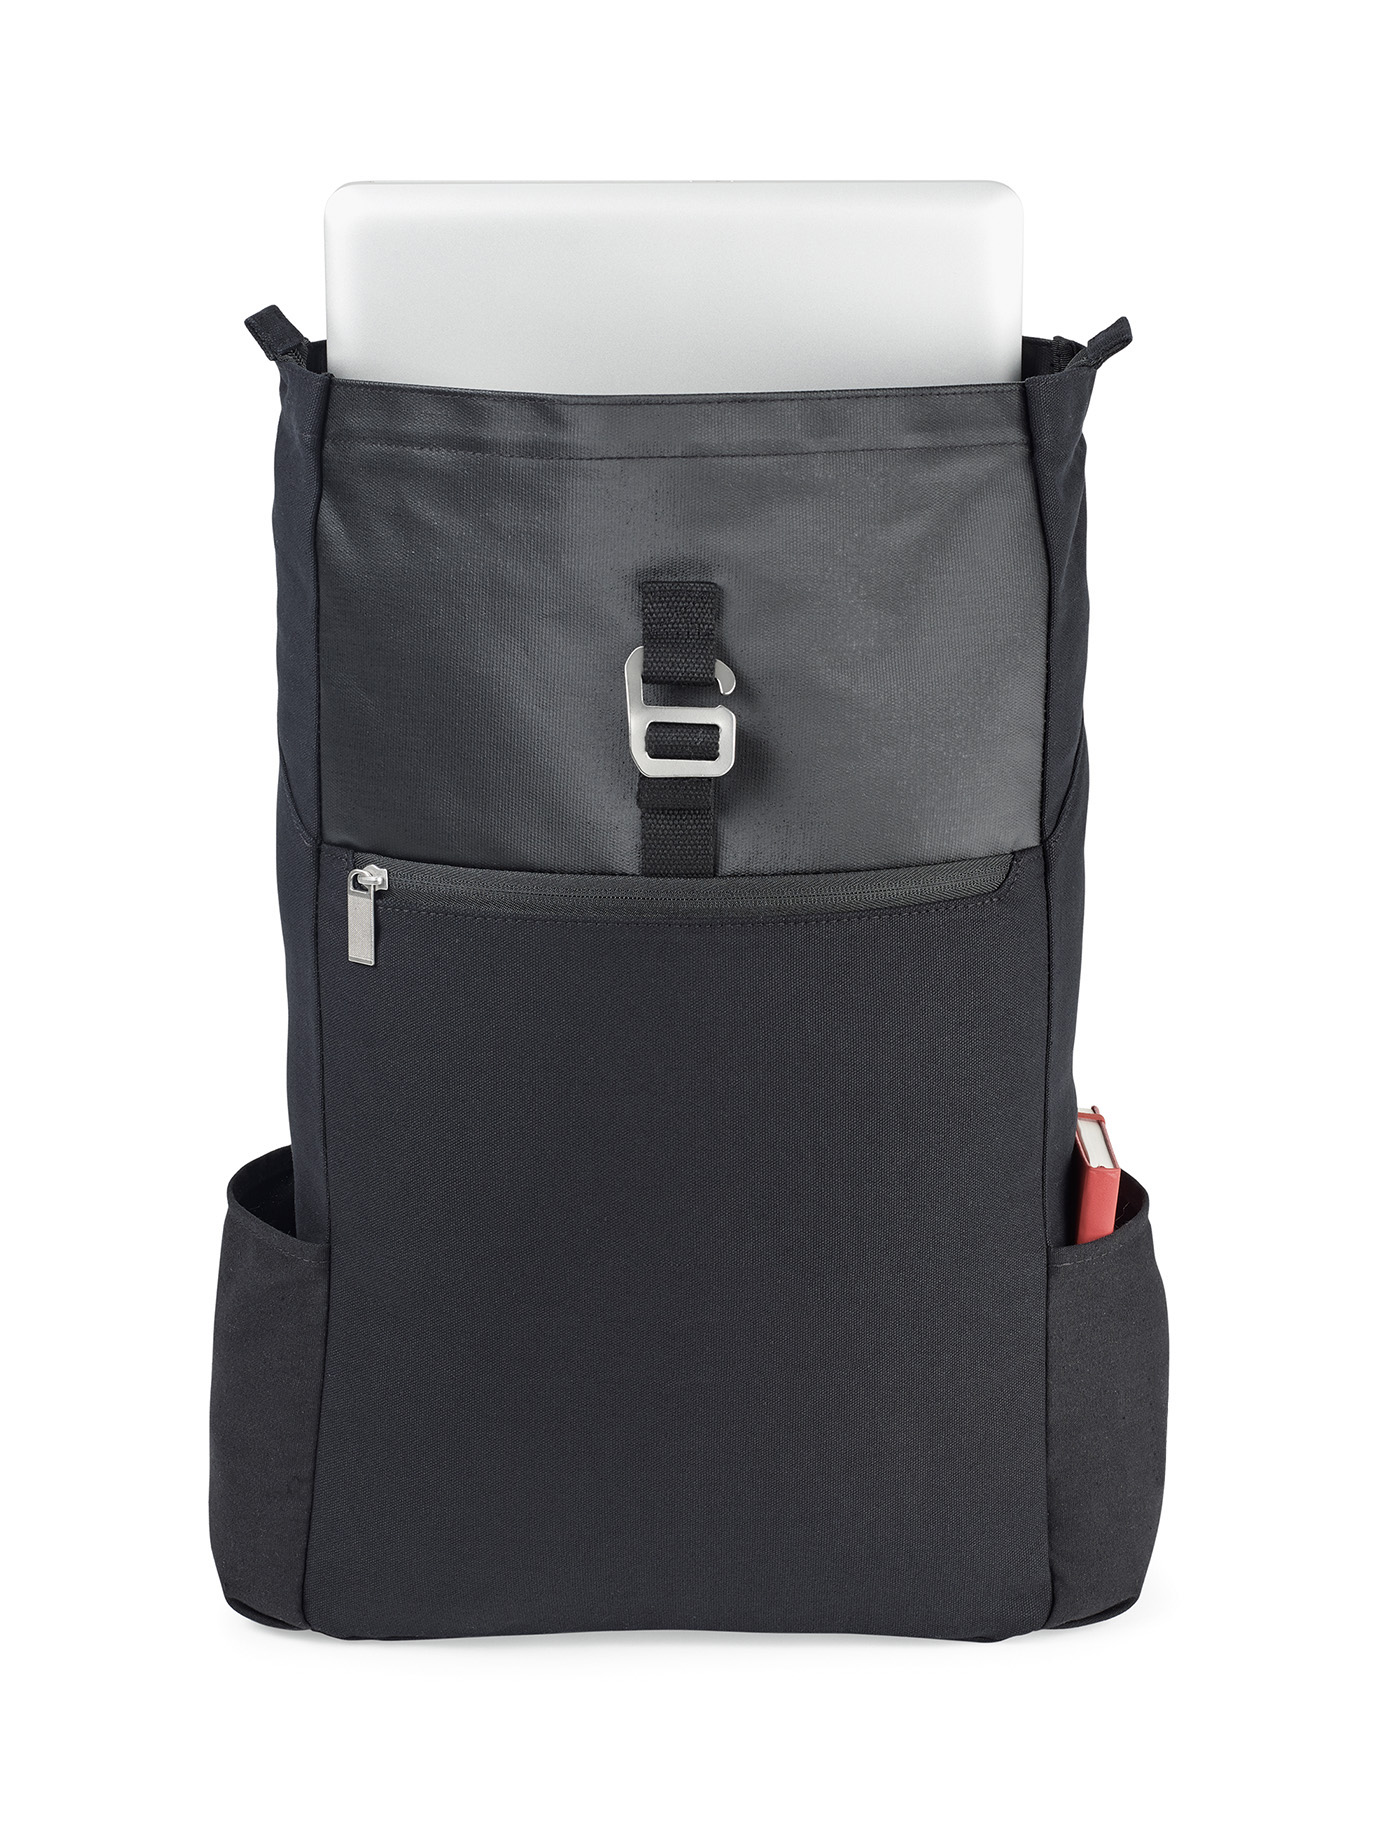 Cotton backpack with coated cotton on top panel and 12oz cotton as main body fabric.